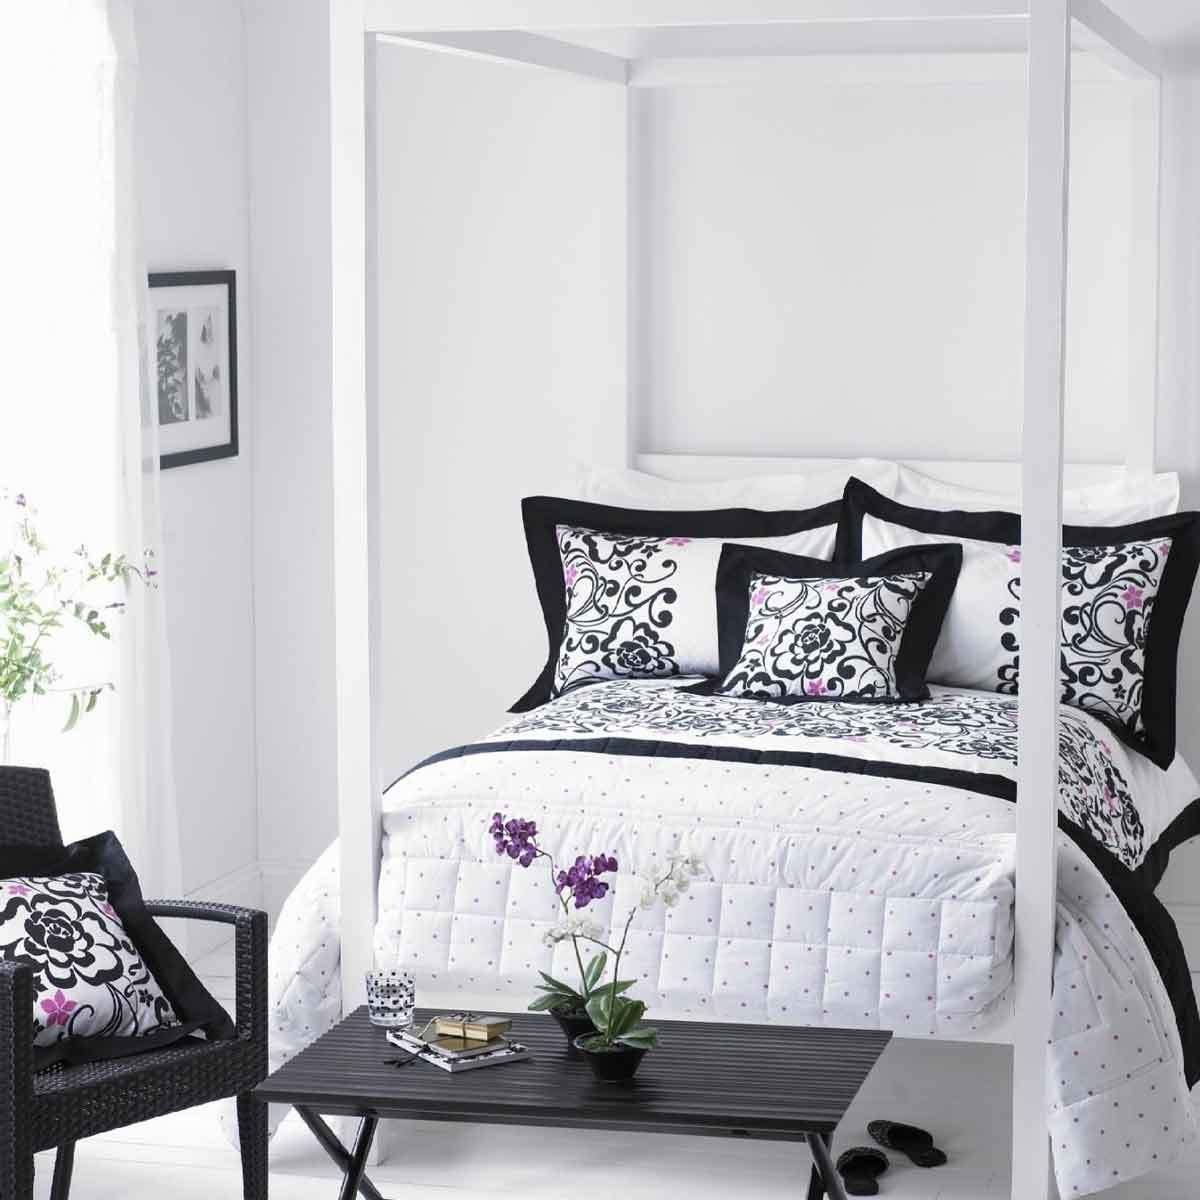 Best Bedroom Decorative Black And White Bedrooms For Teenage With Pictures